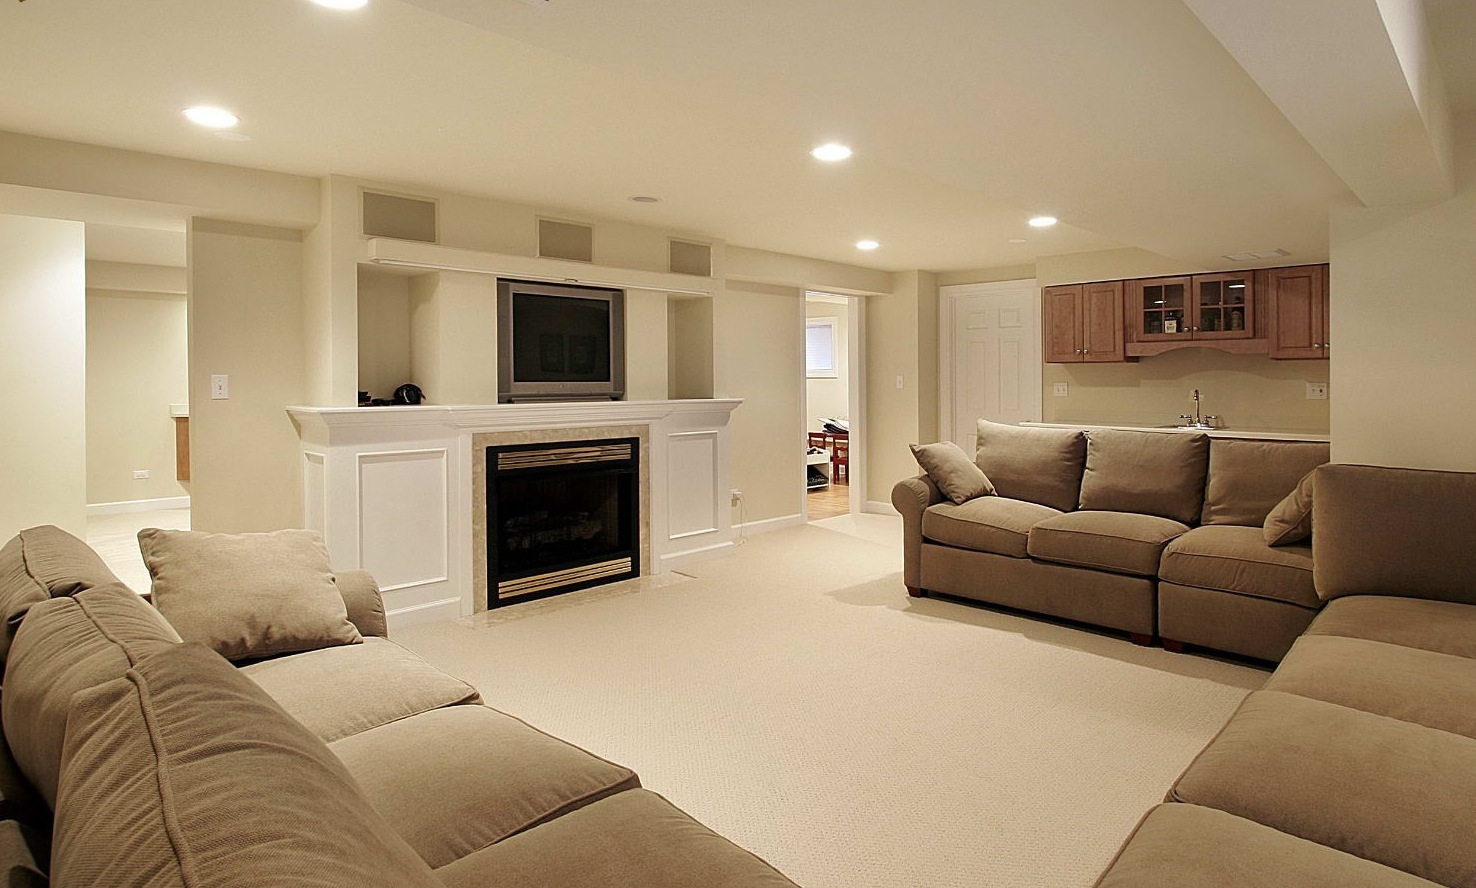 Home Basement Designs Decor Glamorous 30 Basement Remodeling Ideas & Inspiration Decorating Inspiration